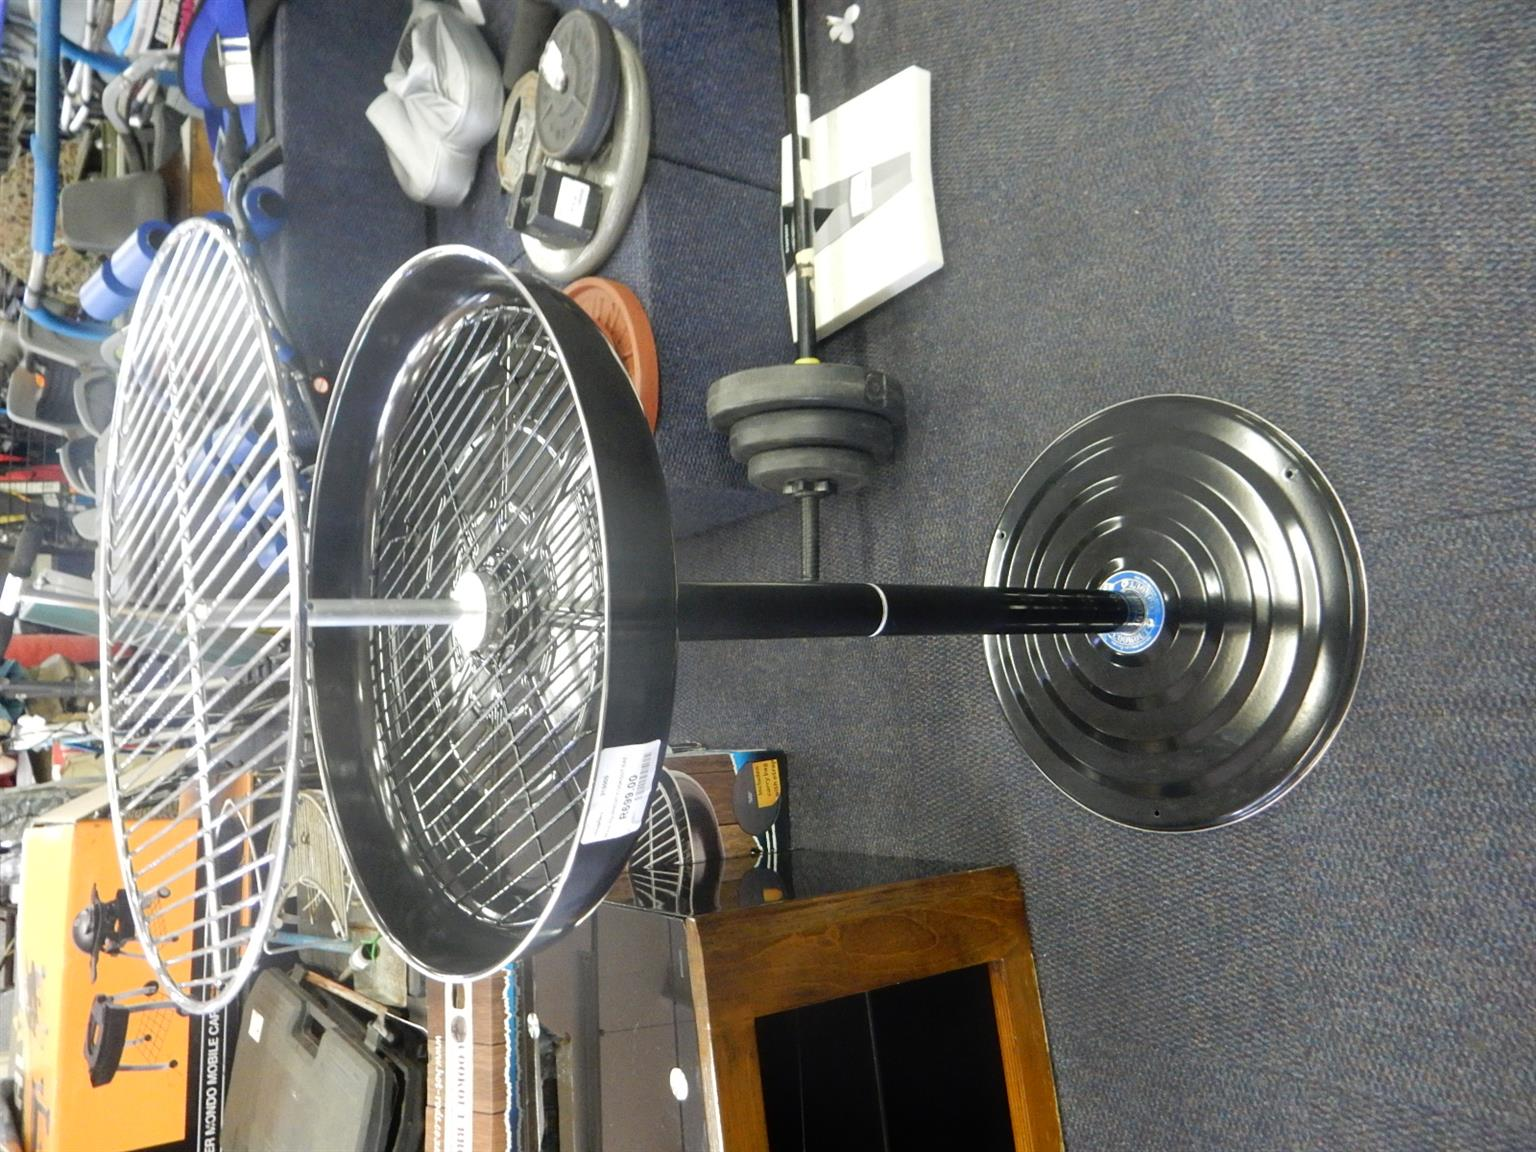 Cookout Easy Lift Portable Braaifor sale R699.00.  Brand new.  Black in colour.  Reference : 213003    Contact Cornè 0715827150